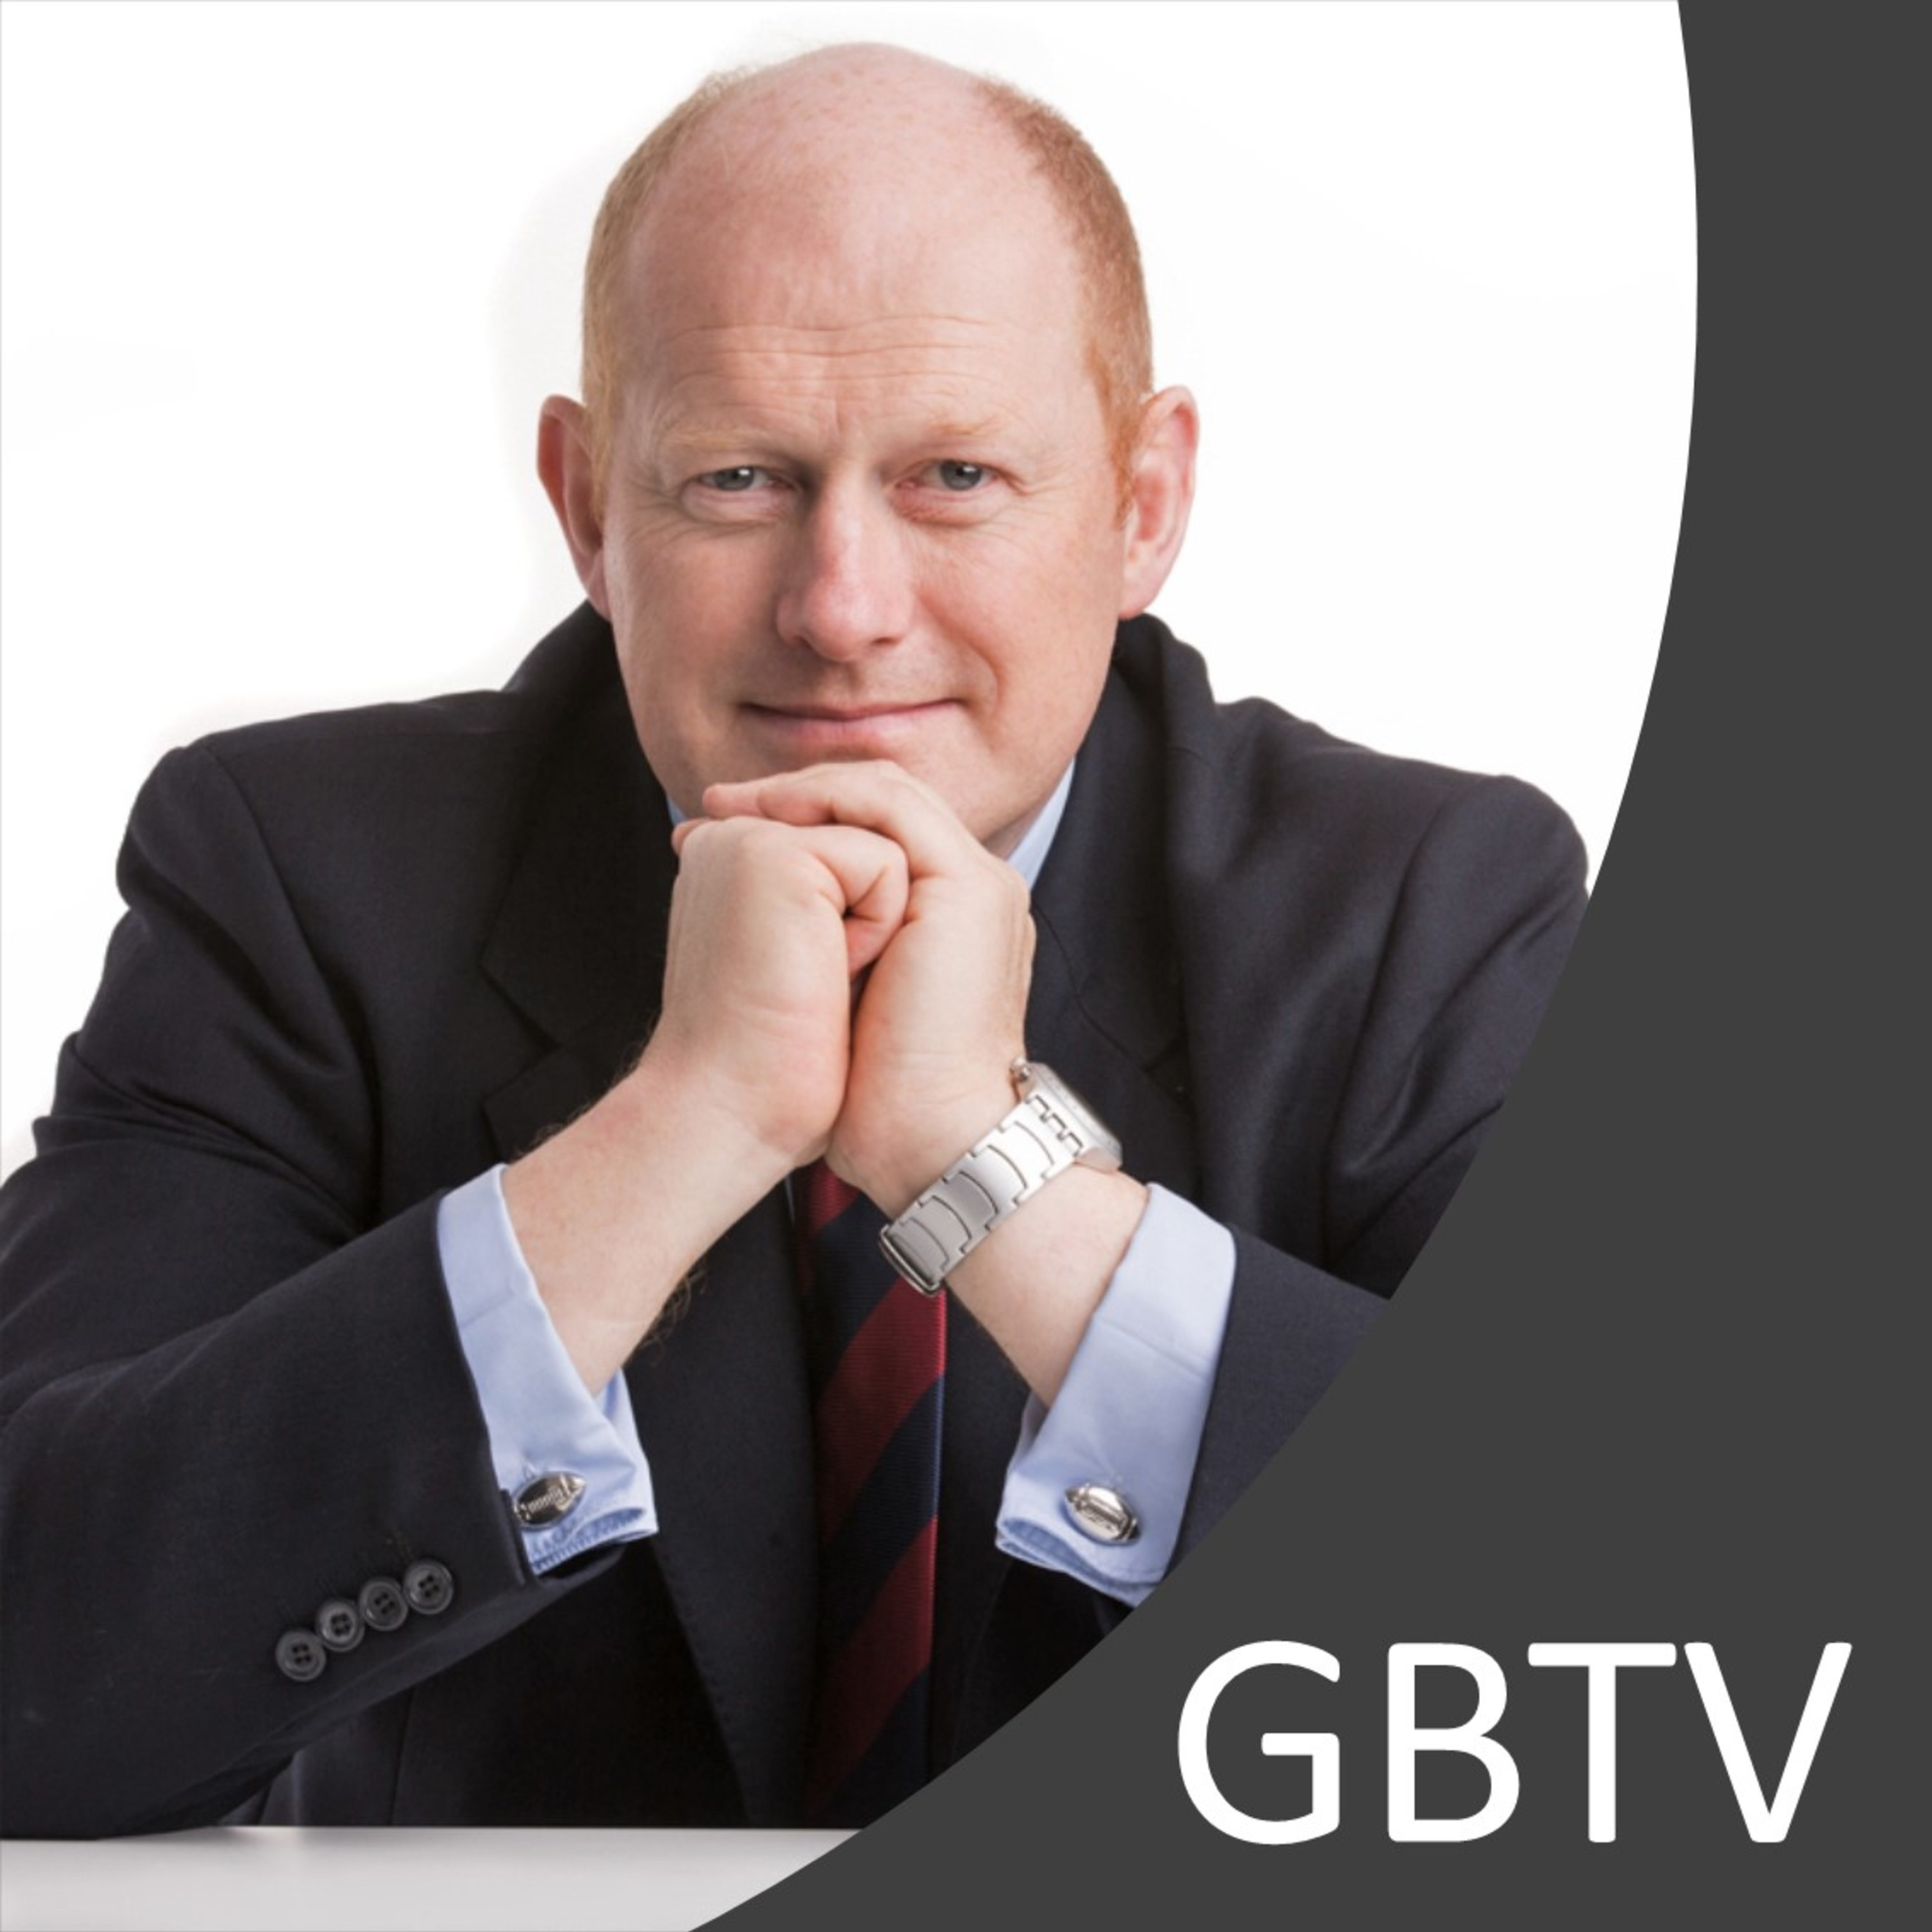 GBTV Episode 12 - Does buying a business mean more work?